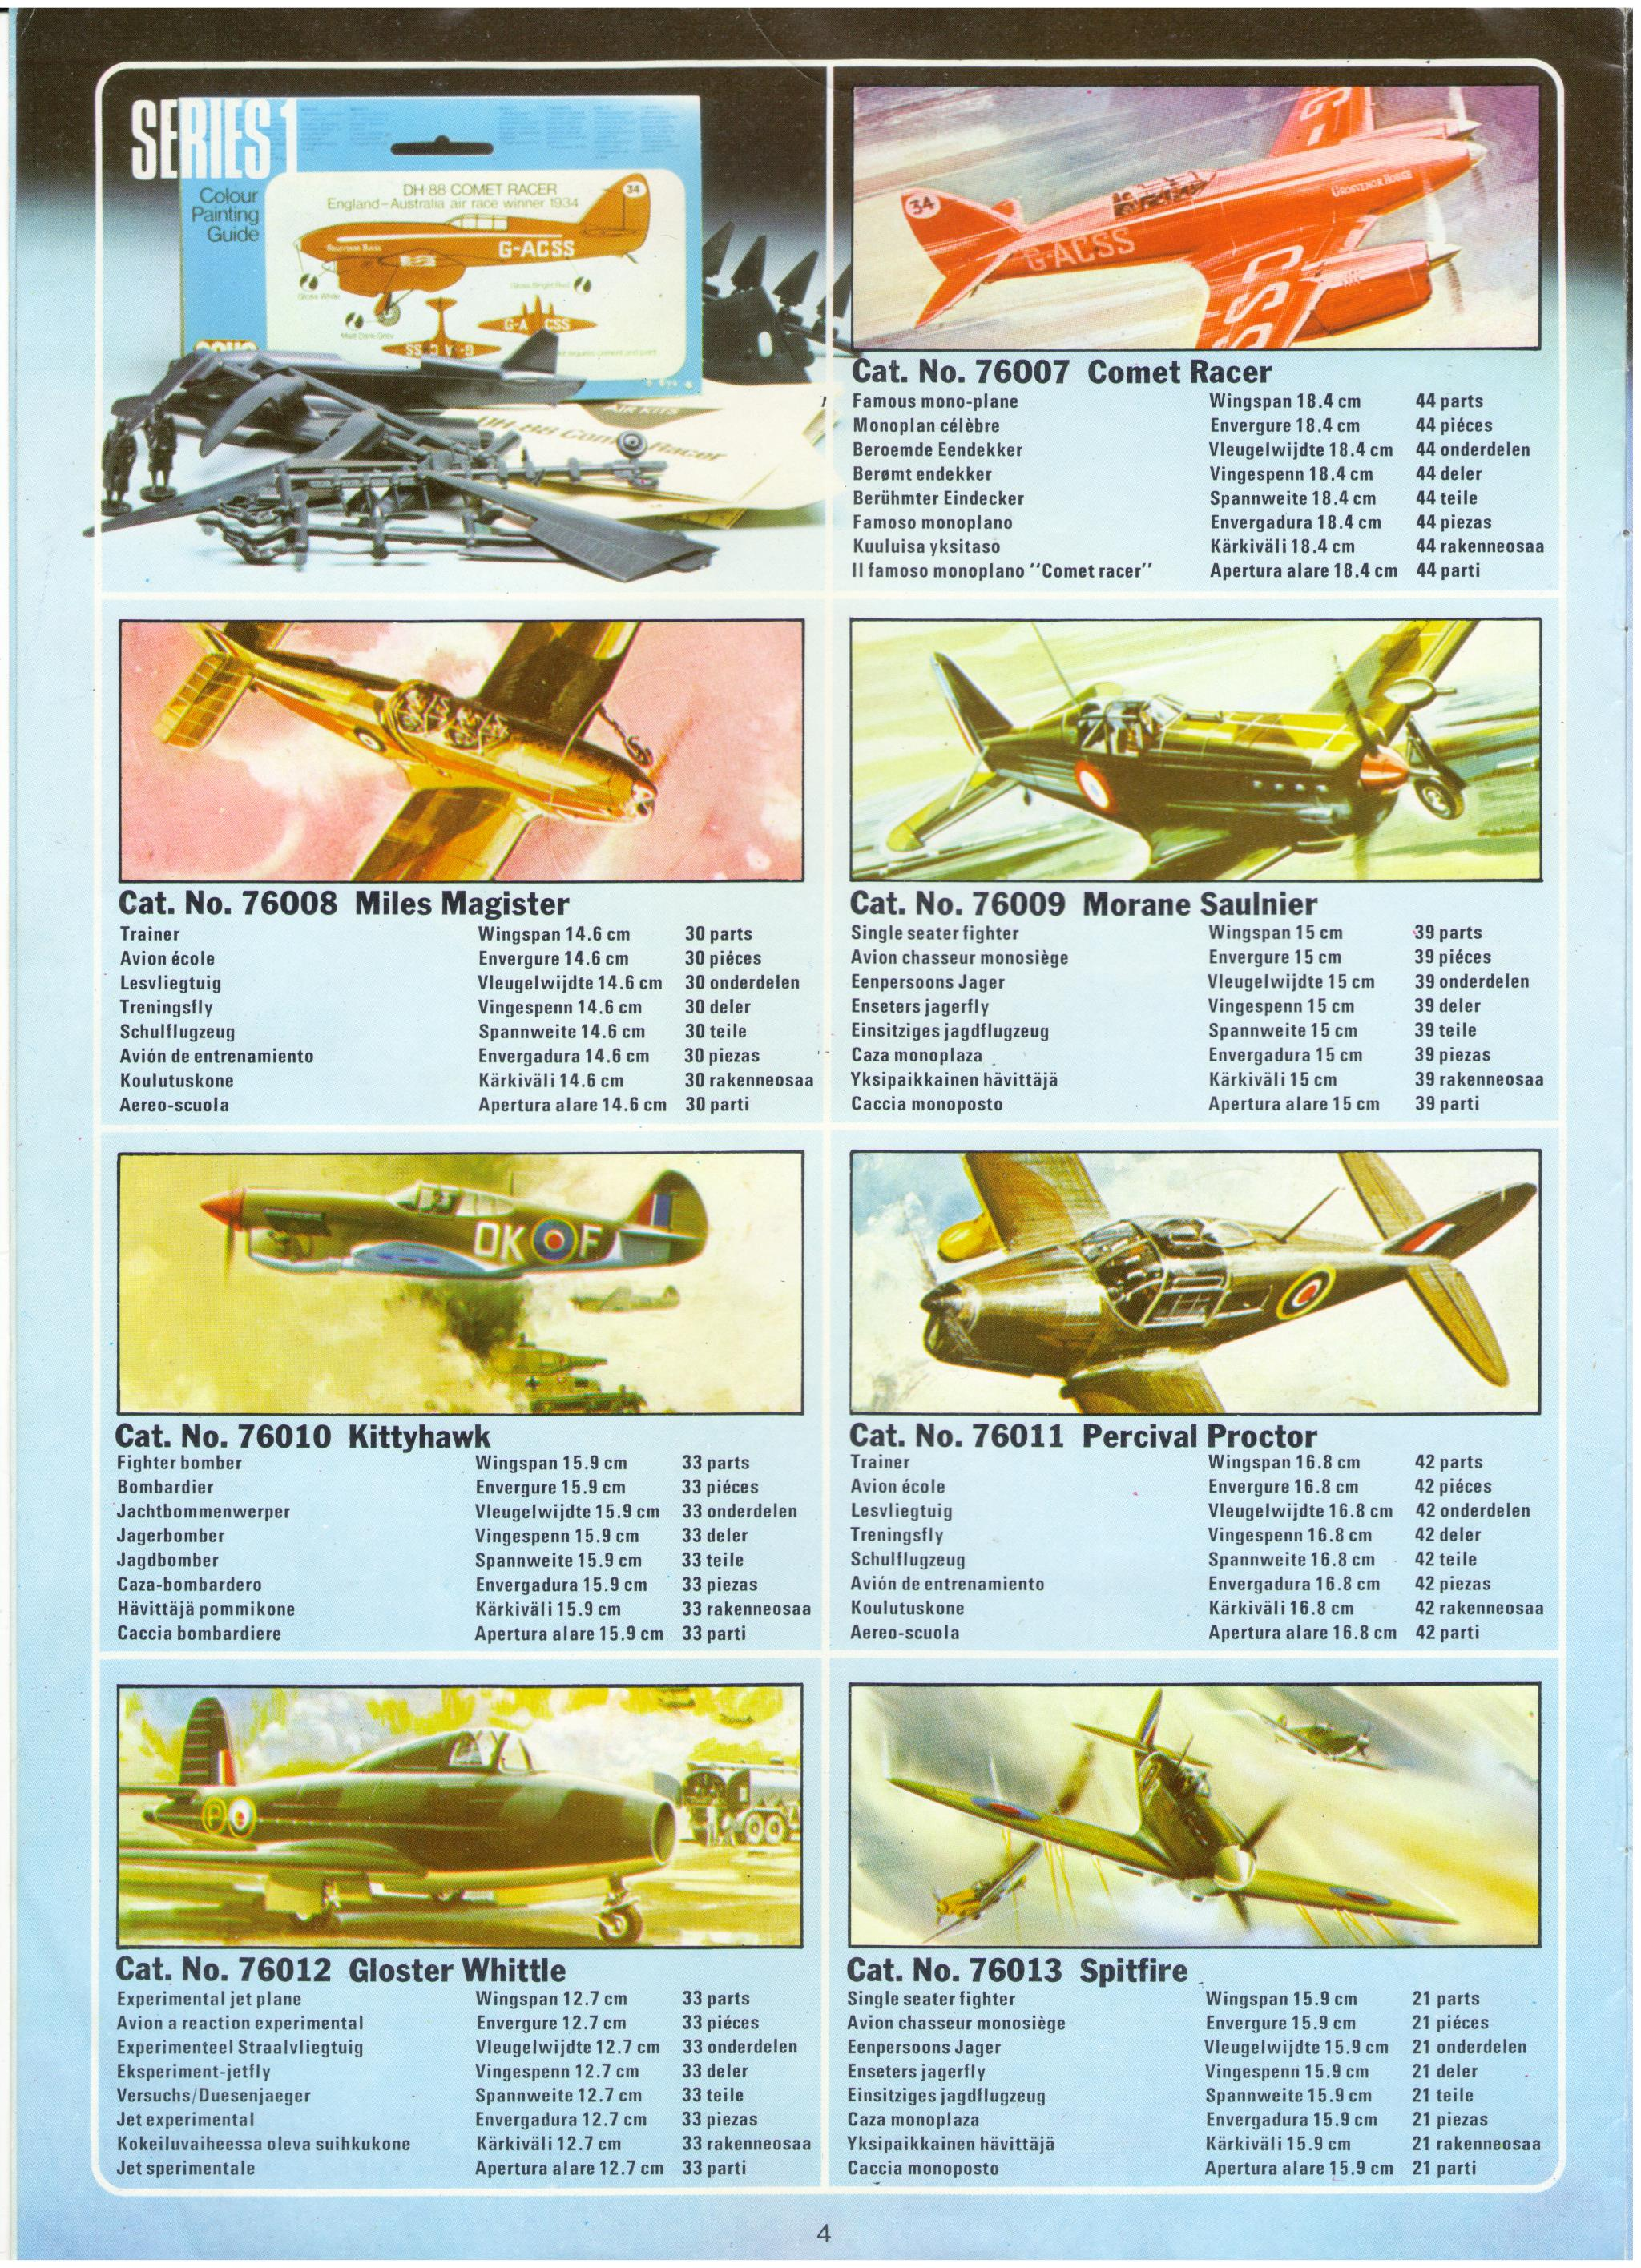 Red Star RS101 Lavochkin LaGG-3, Red Star Model Kits Ltd, 80-s декаль